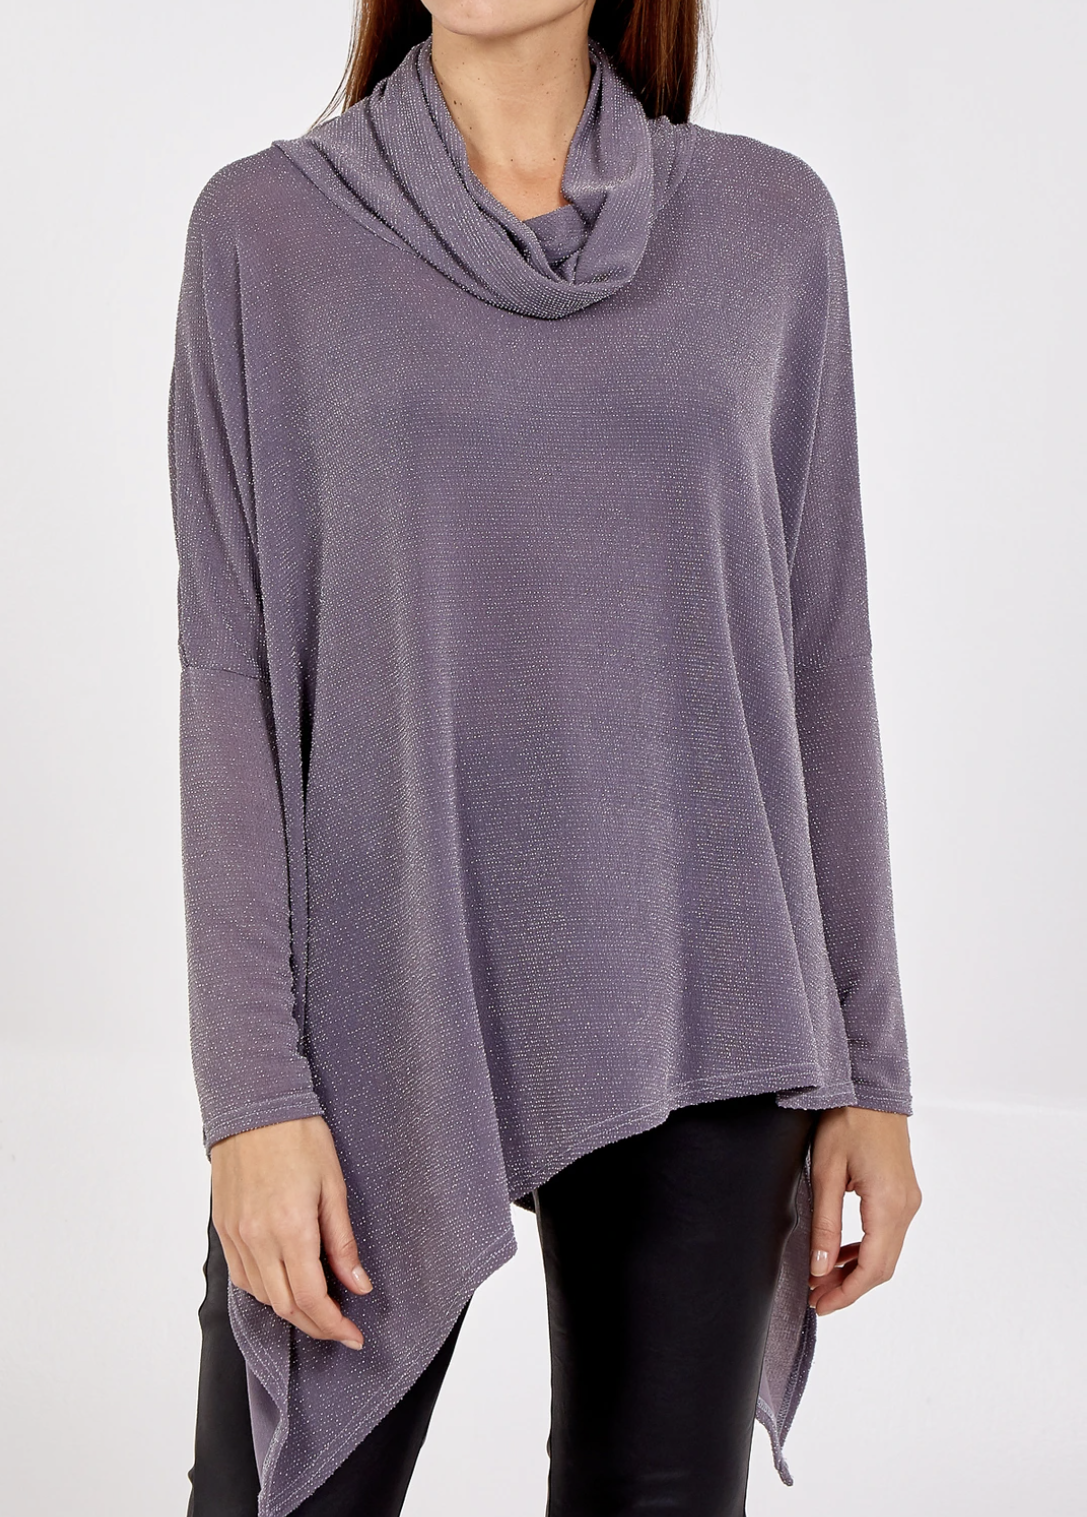 NV796 Cowl Neck Glitter Long Sleeve Top